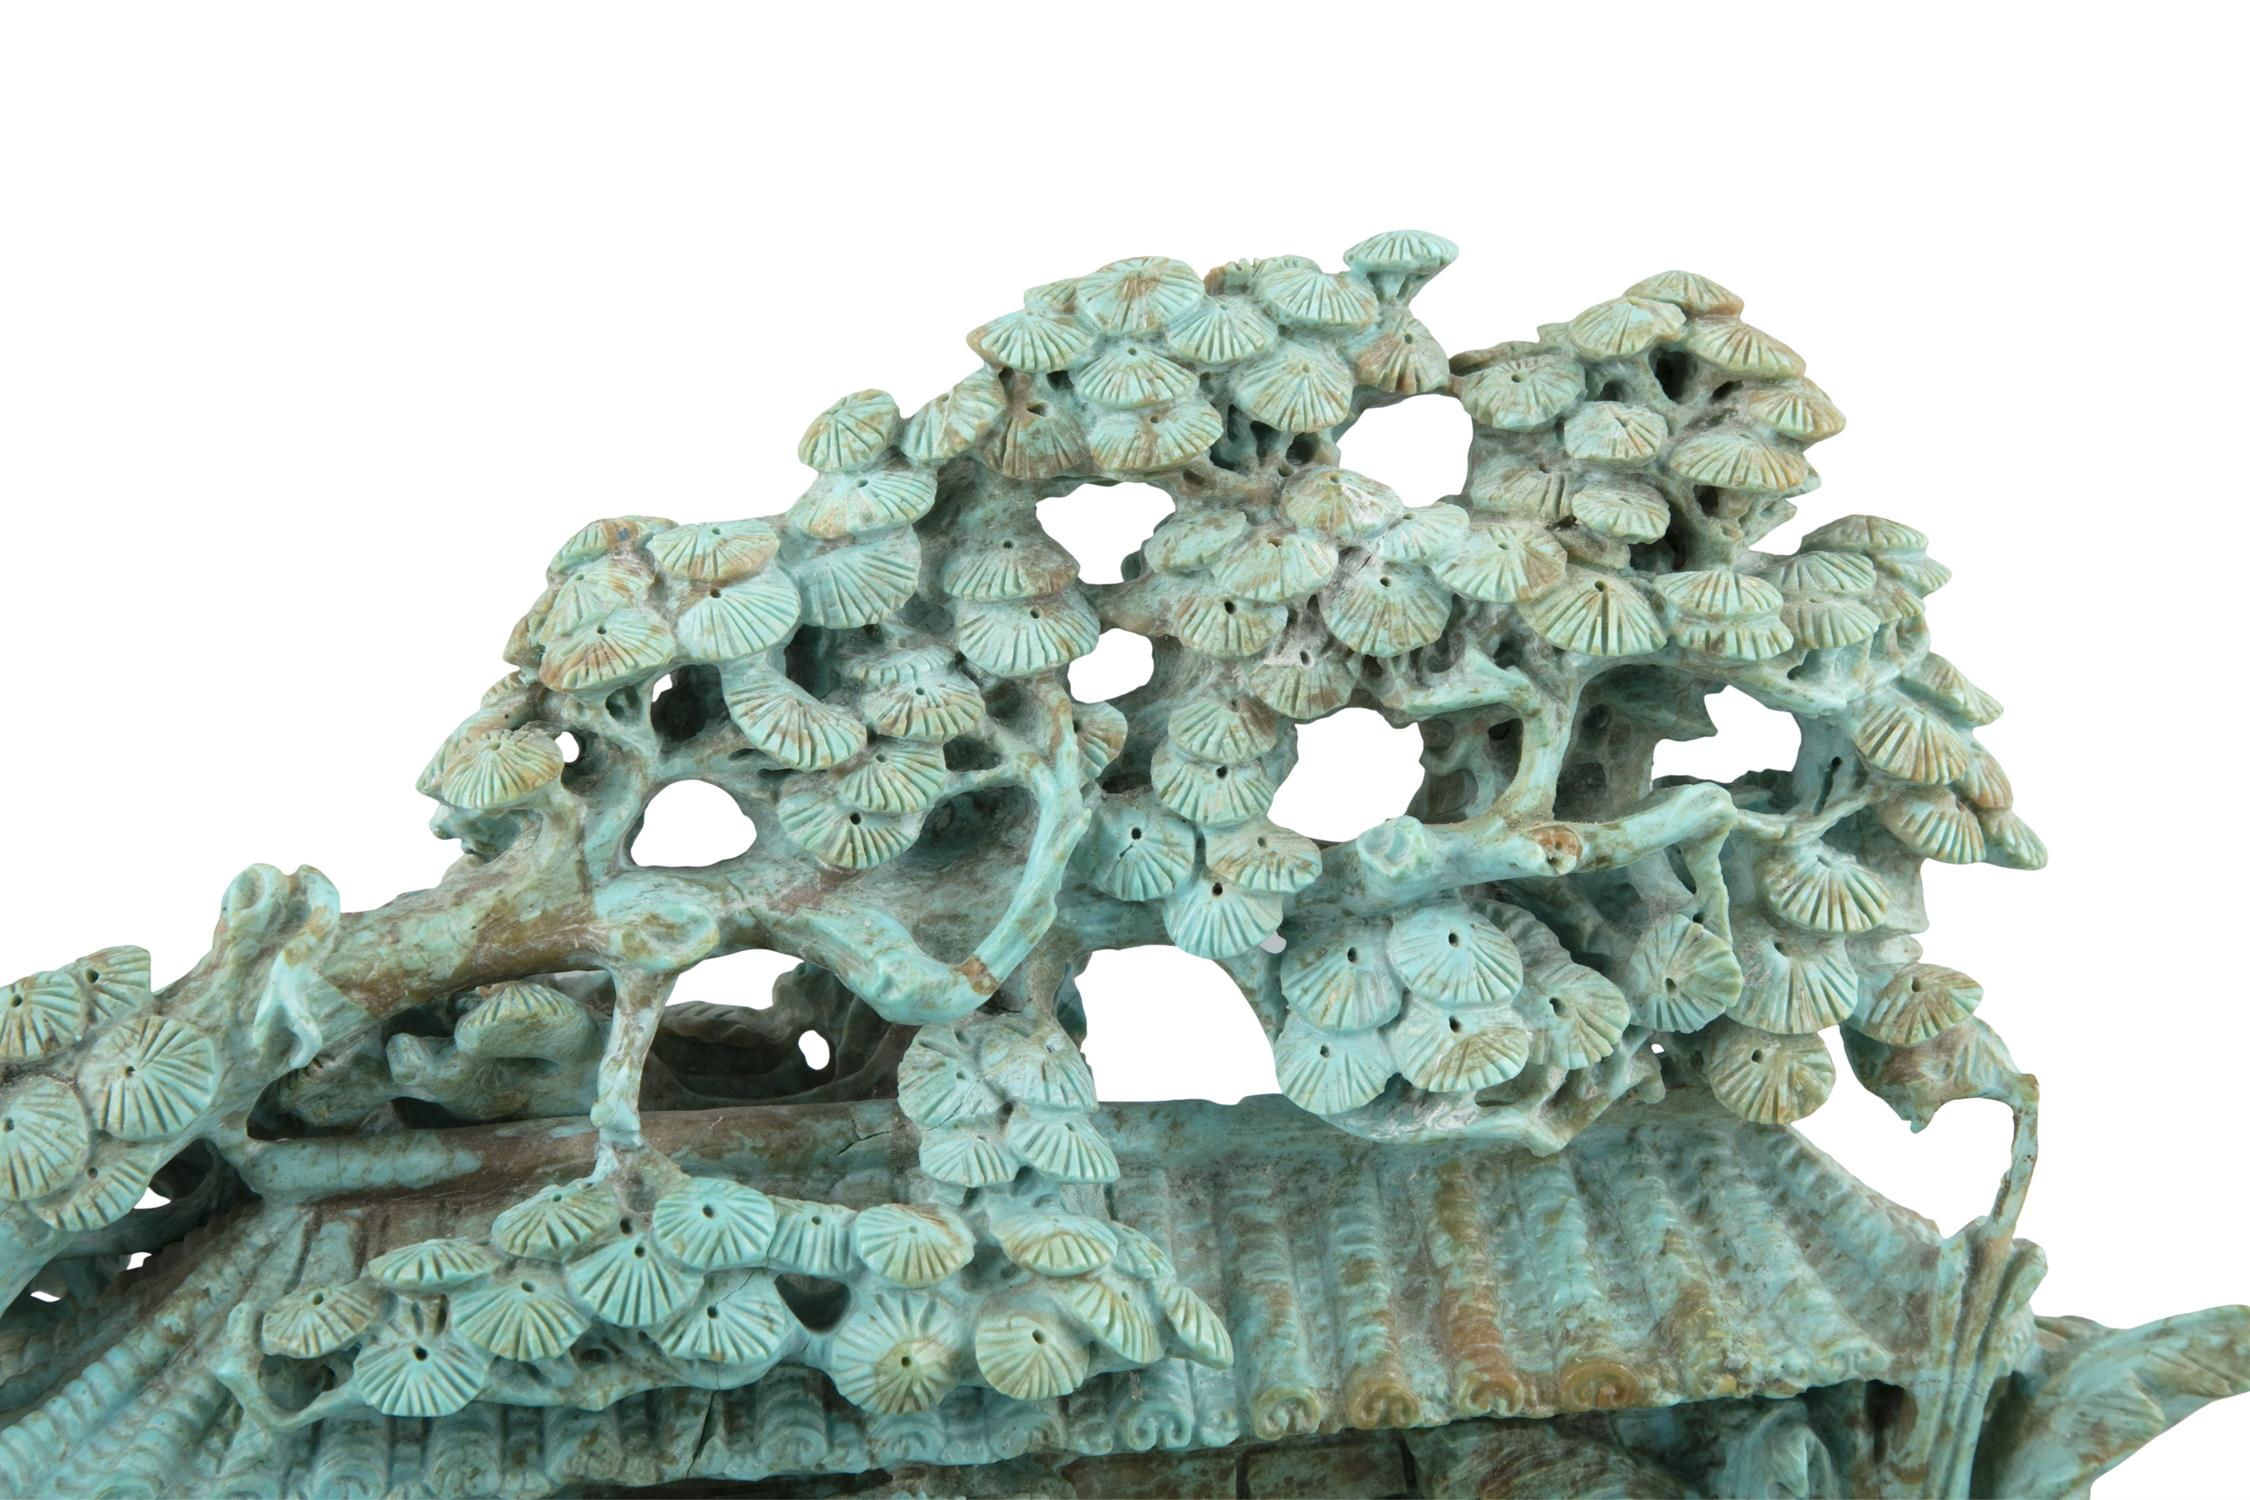 A LARGE AND UNUSUAL TURQUOISE MATRIX LANDSCAPE China, 20th century An important and large group - Image 21 of 22